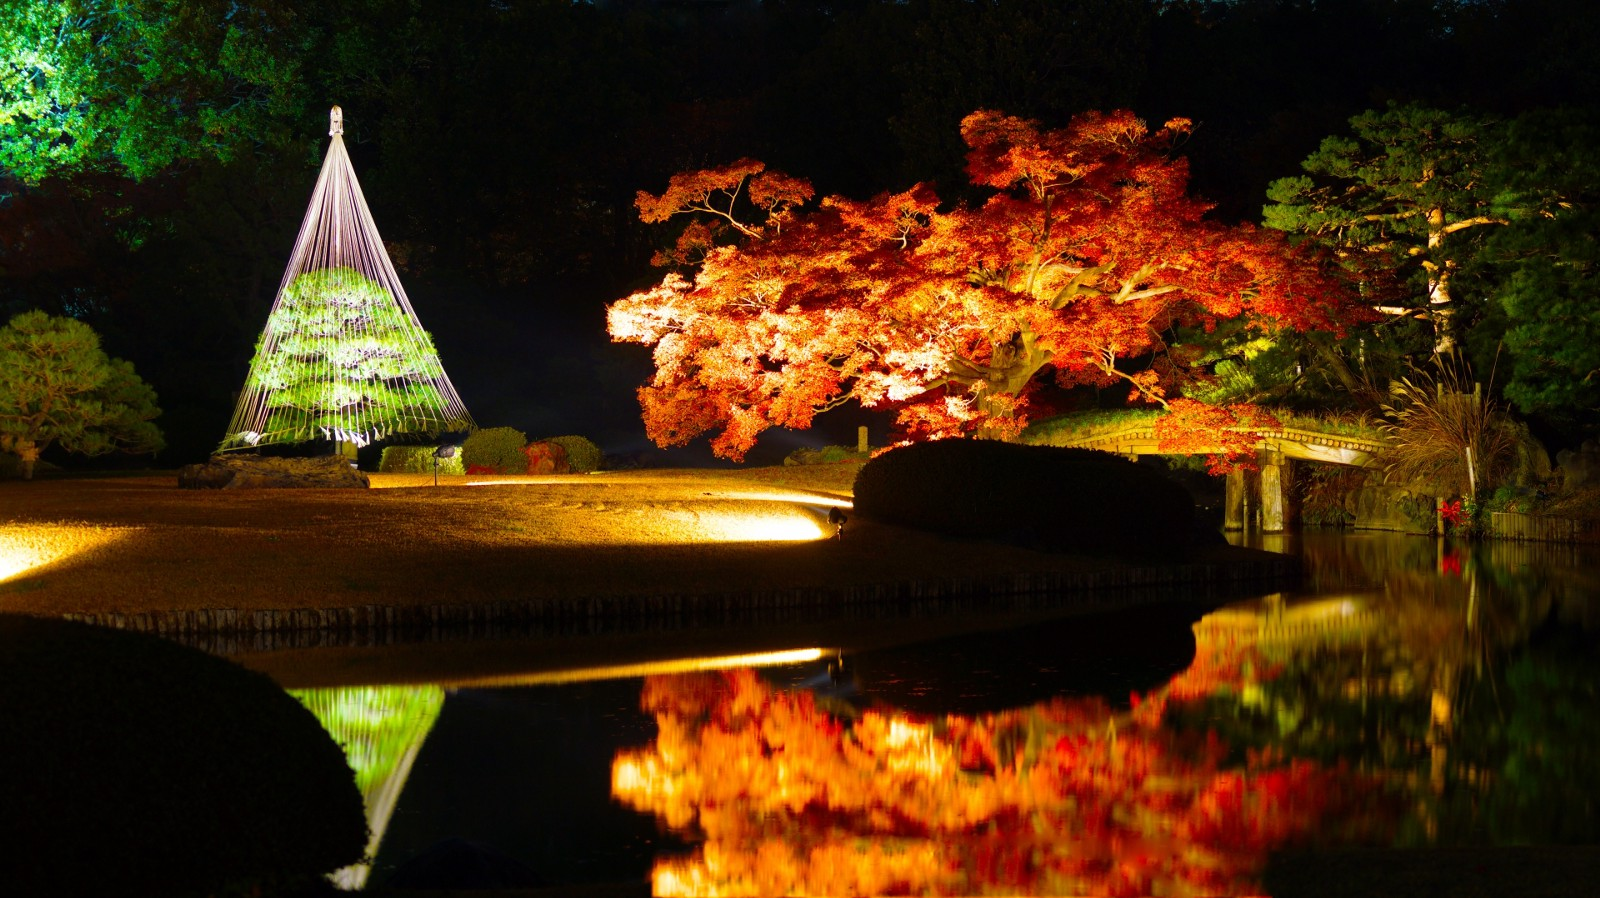 Rikugien Garden: Tokyo's Best Japanese Garden with Autumn Leaves